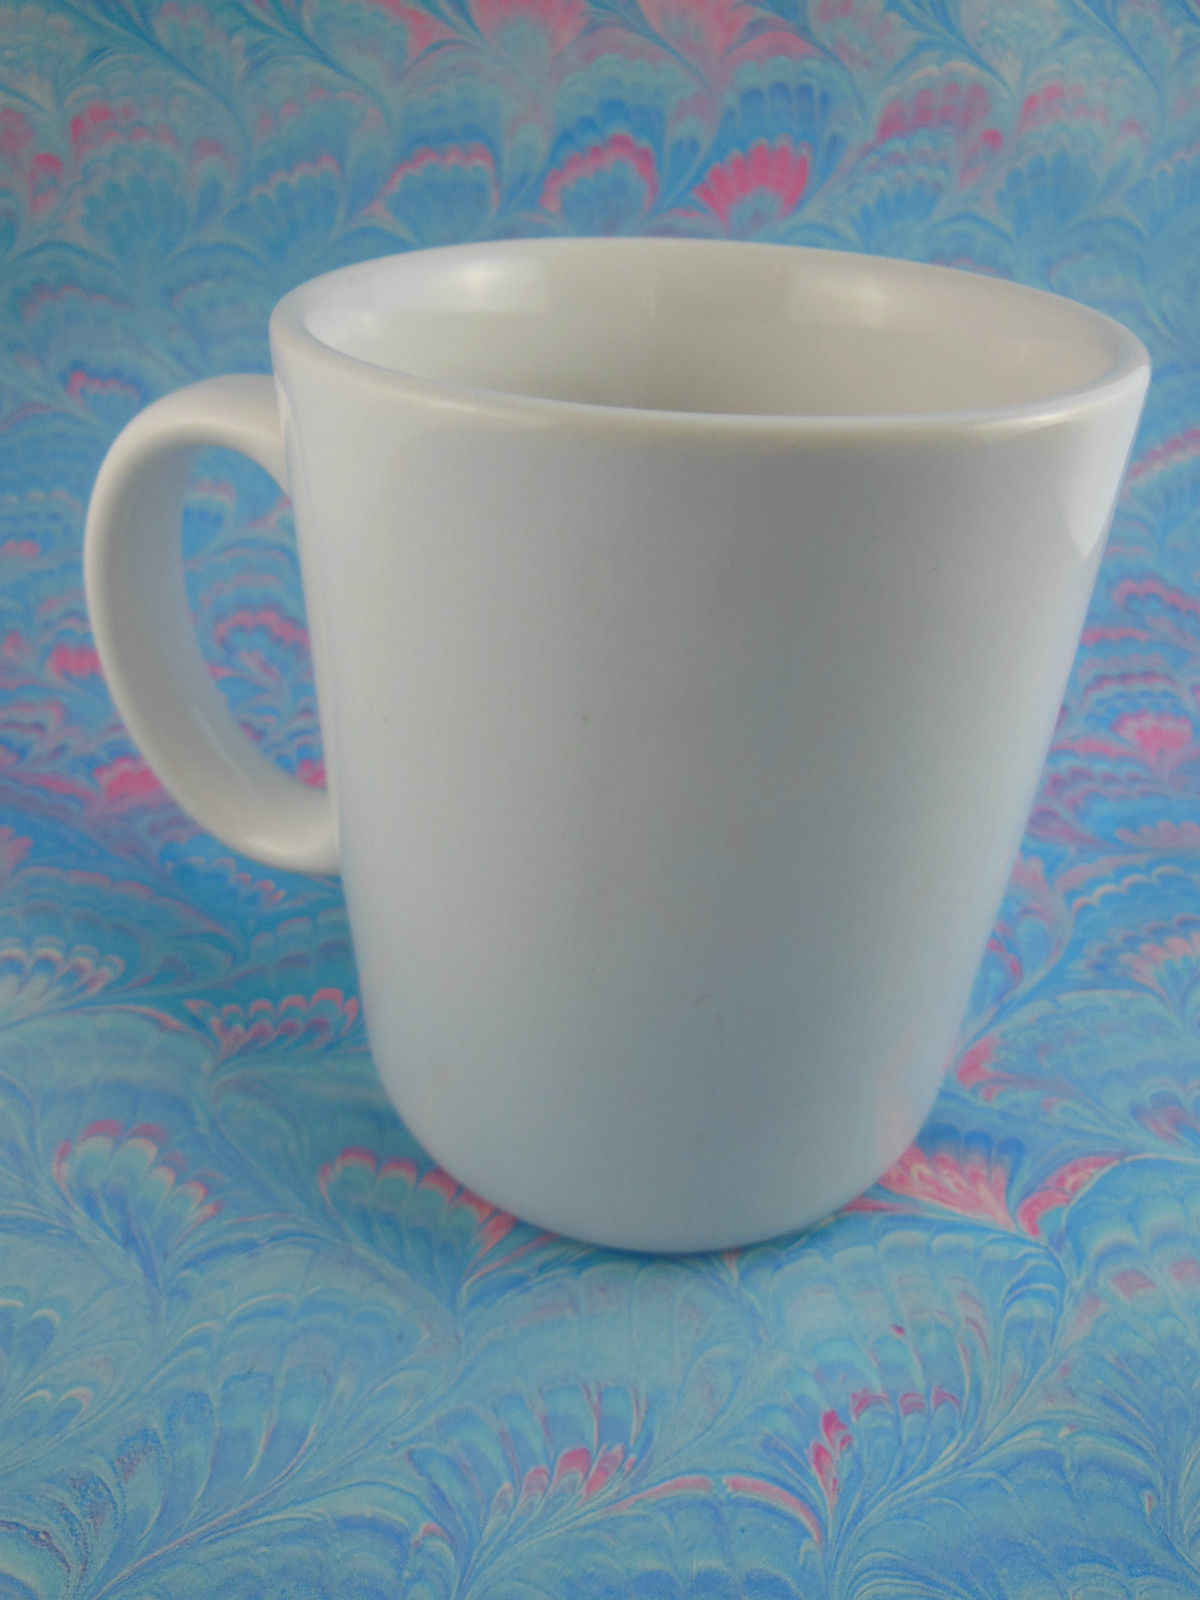 Vintage 1984 Olympic Games Swimming Mug Cup Papel